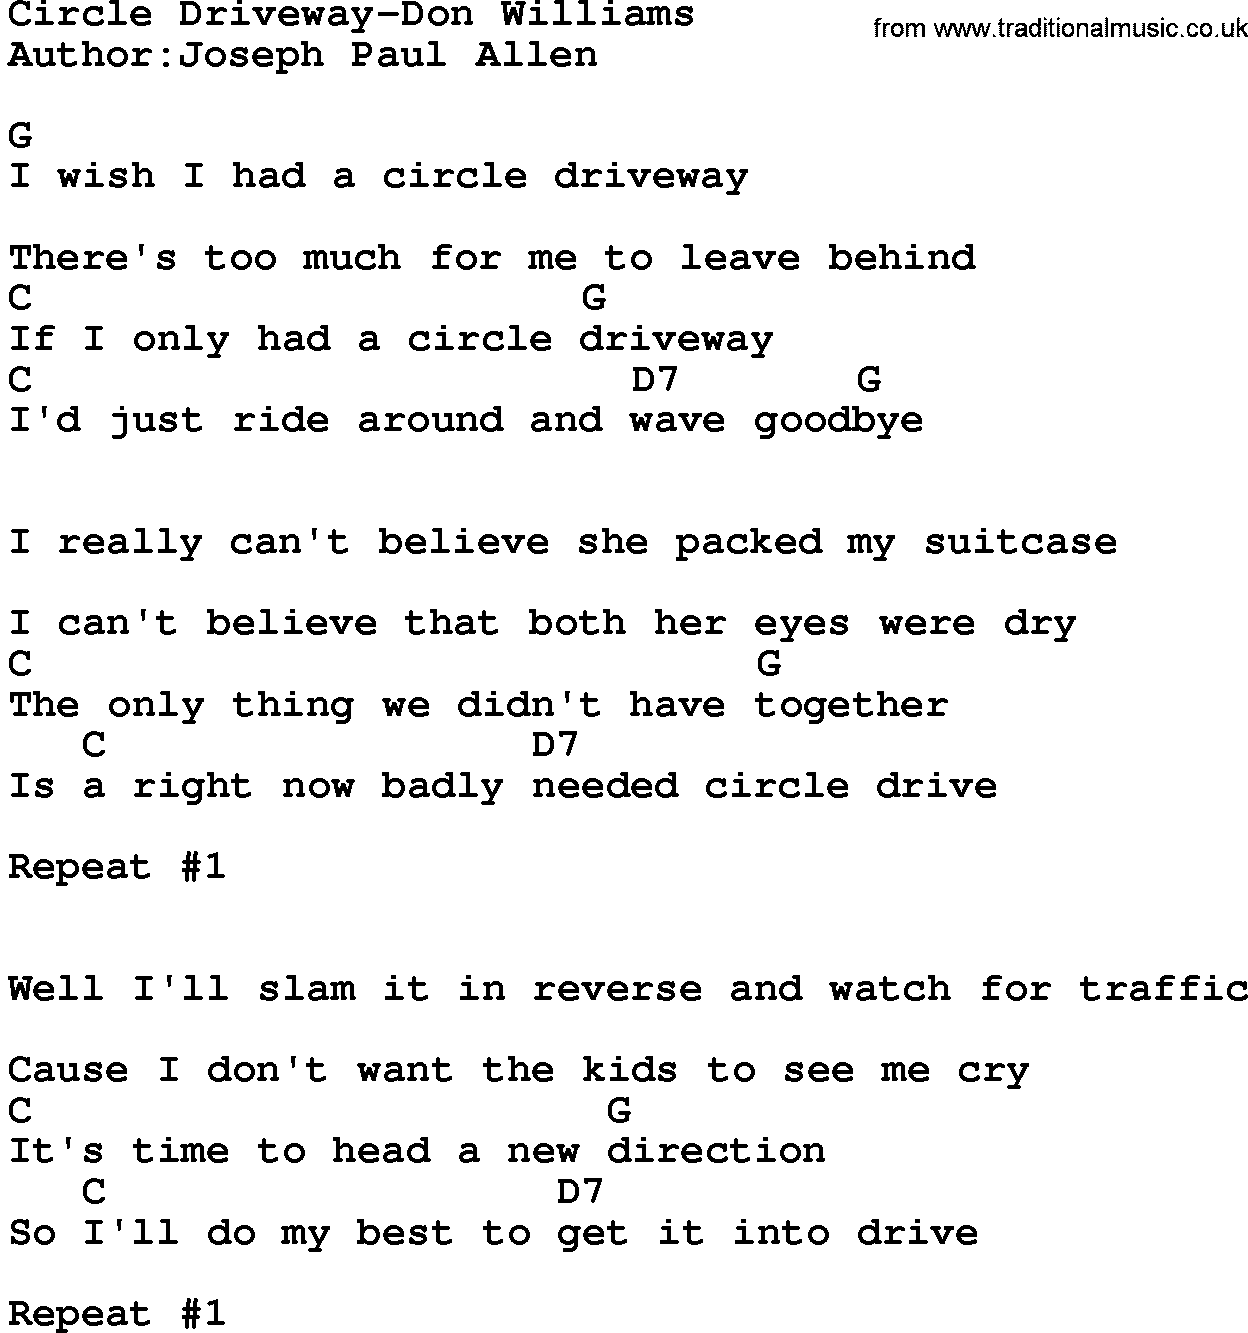 Download circle driveway don williams lyrics and chords as pdf file